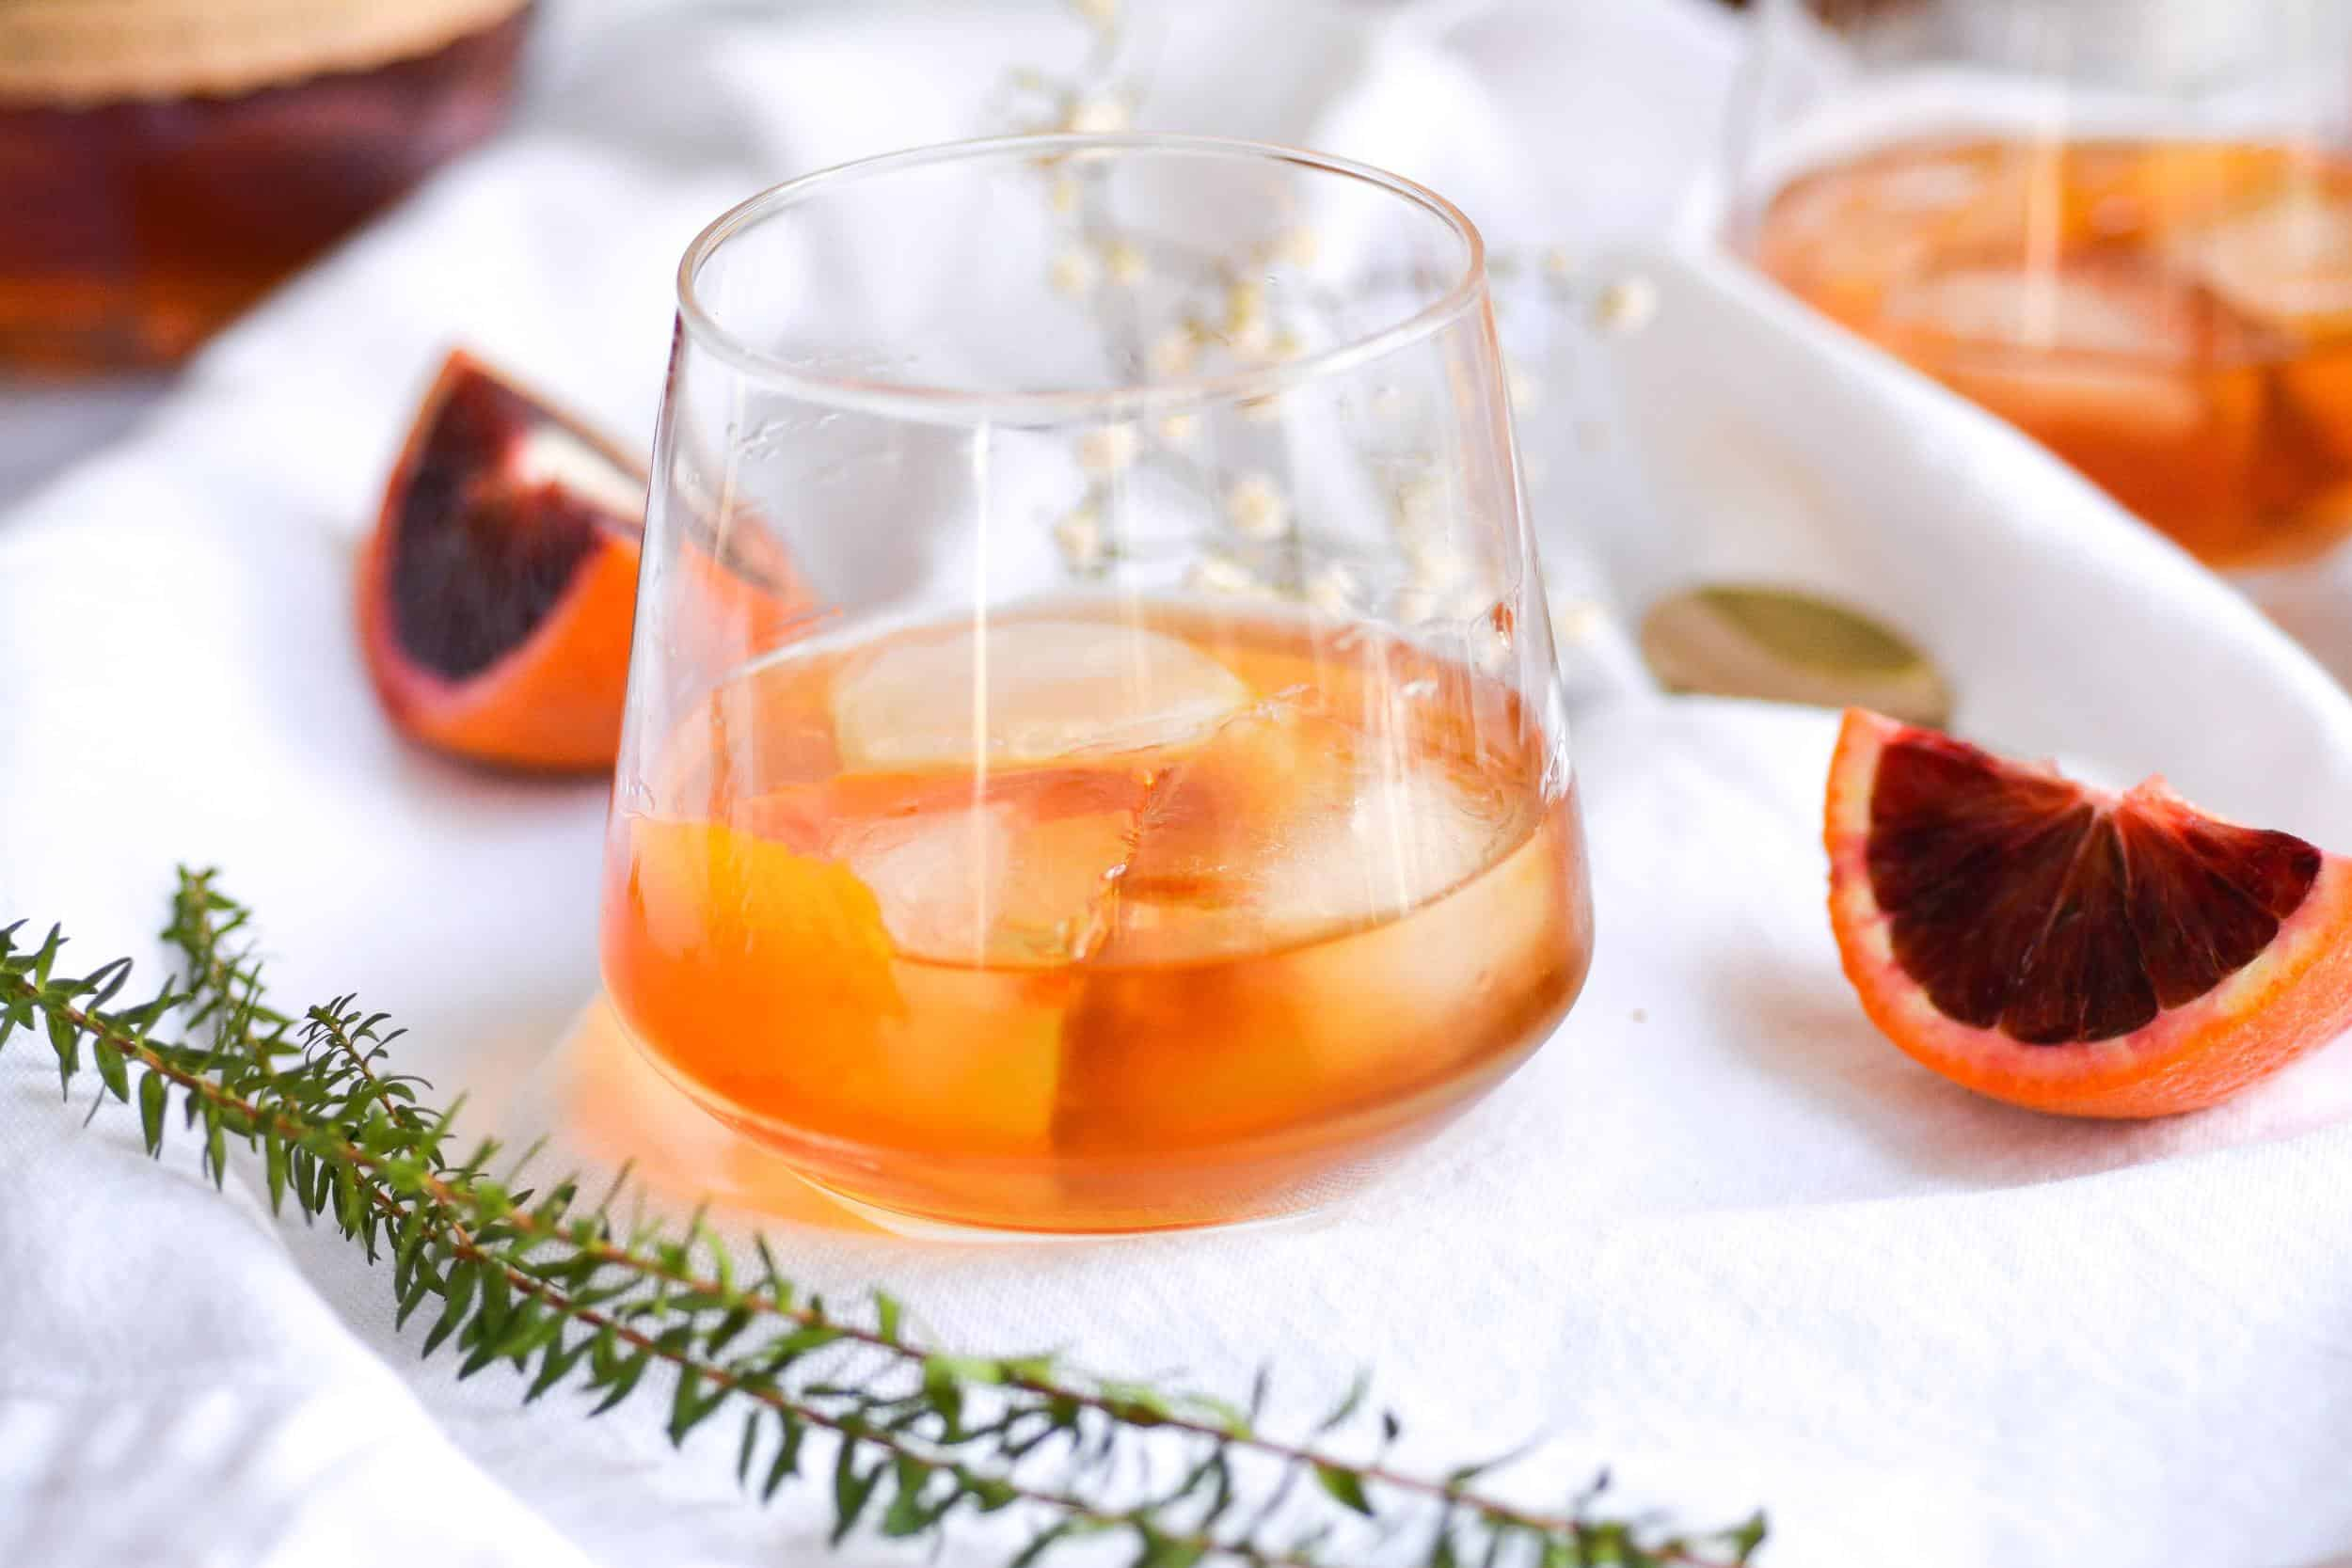 5-Minute Maple Bourbon Old Fashioned